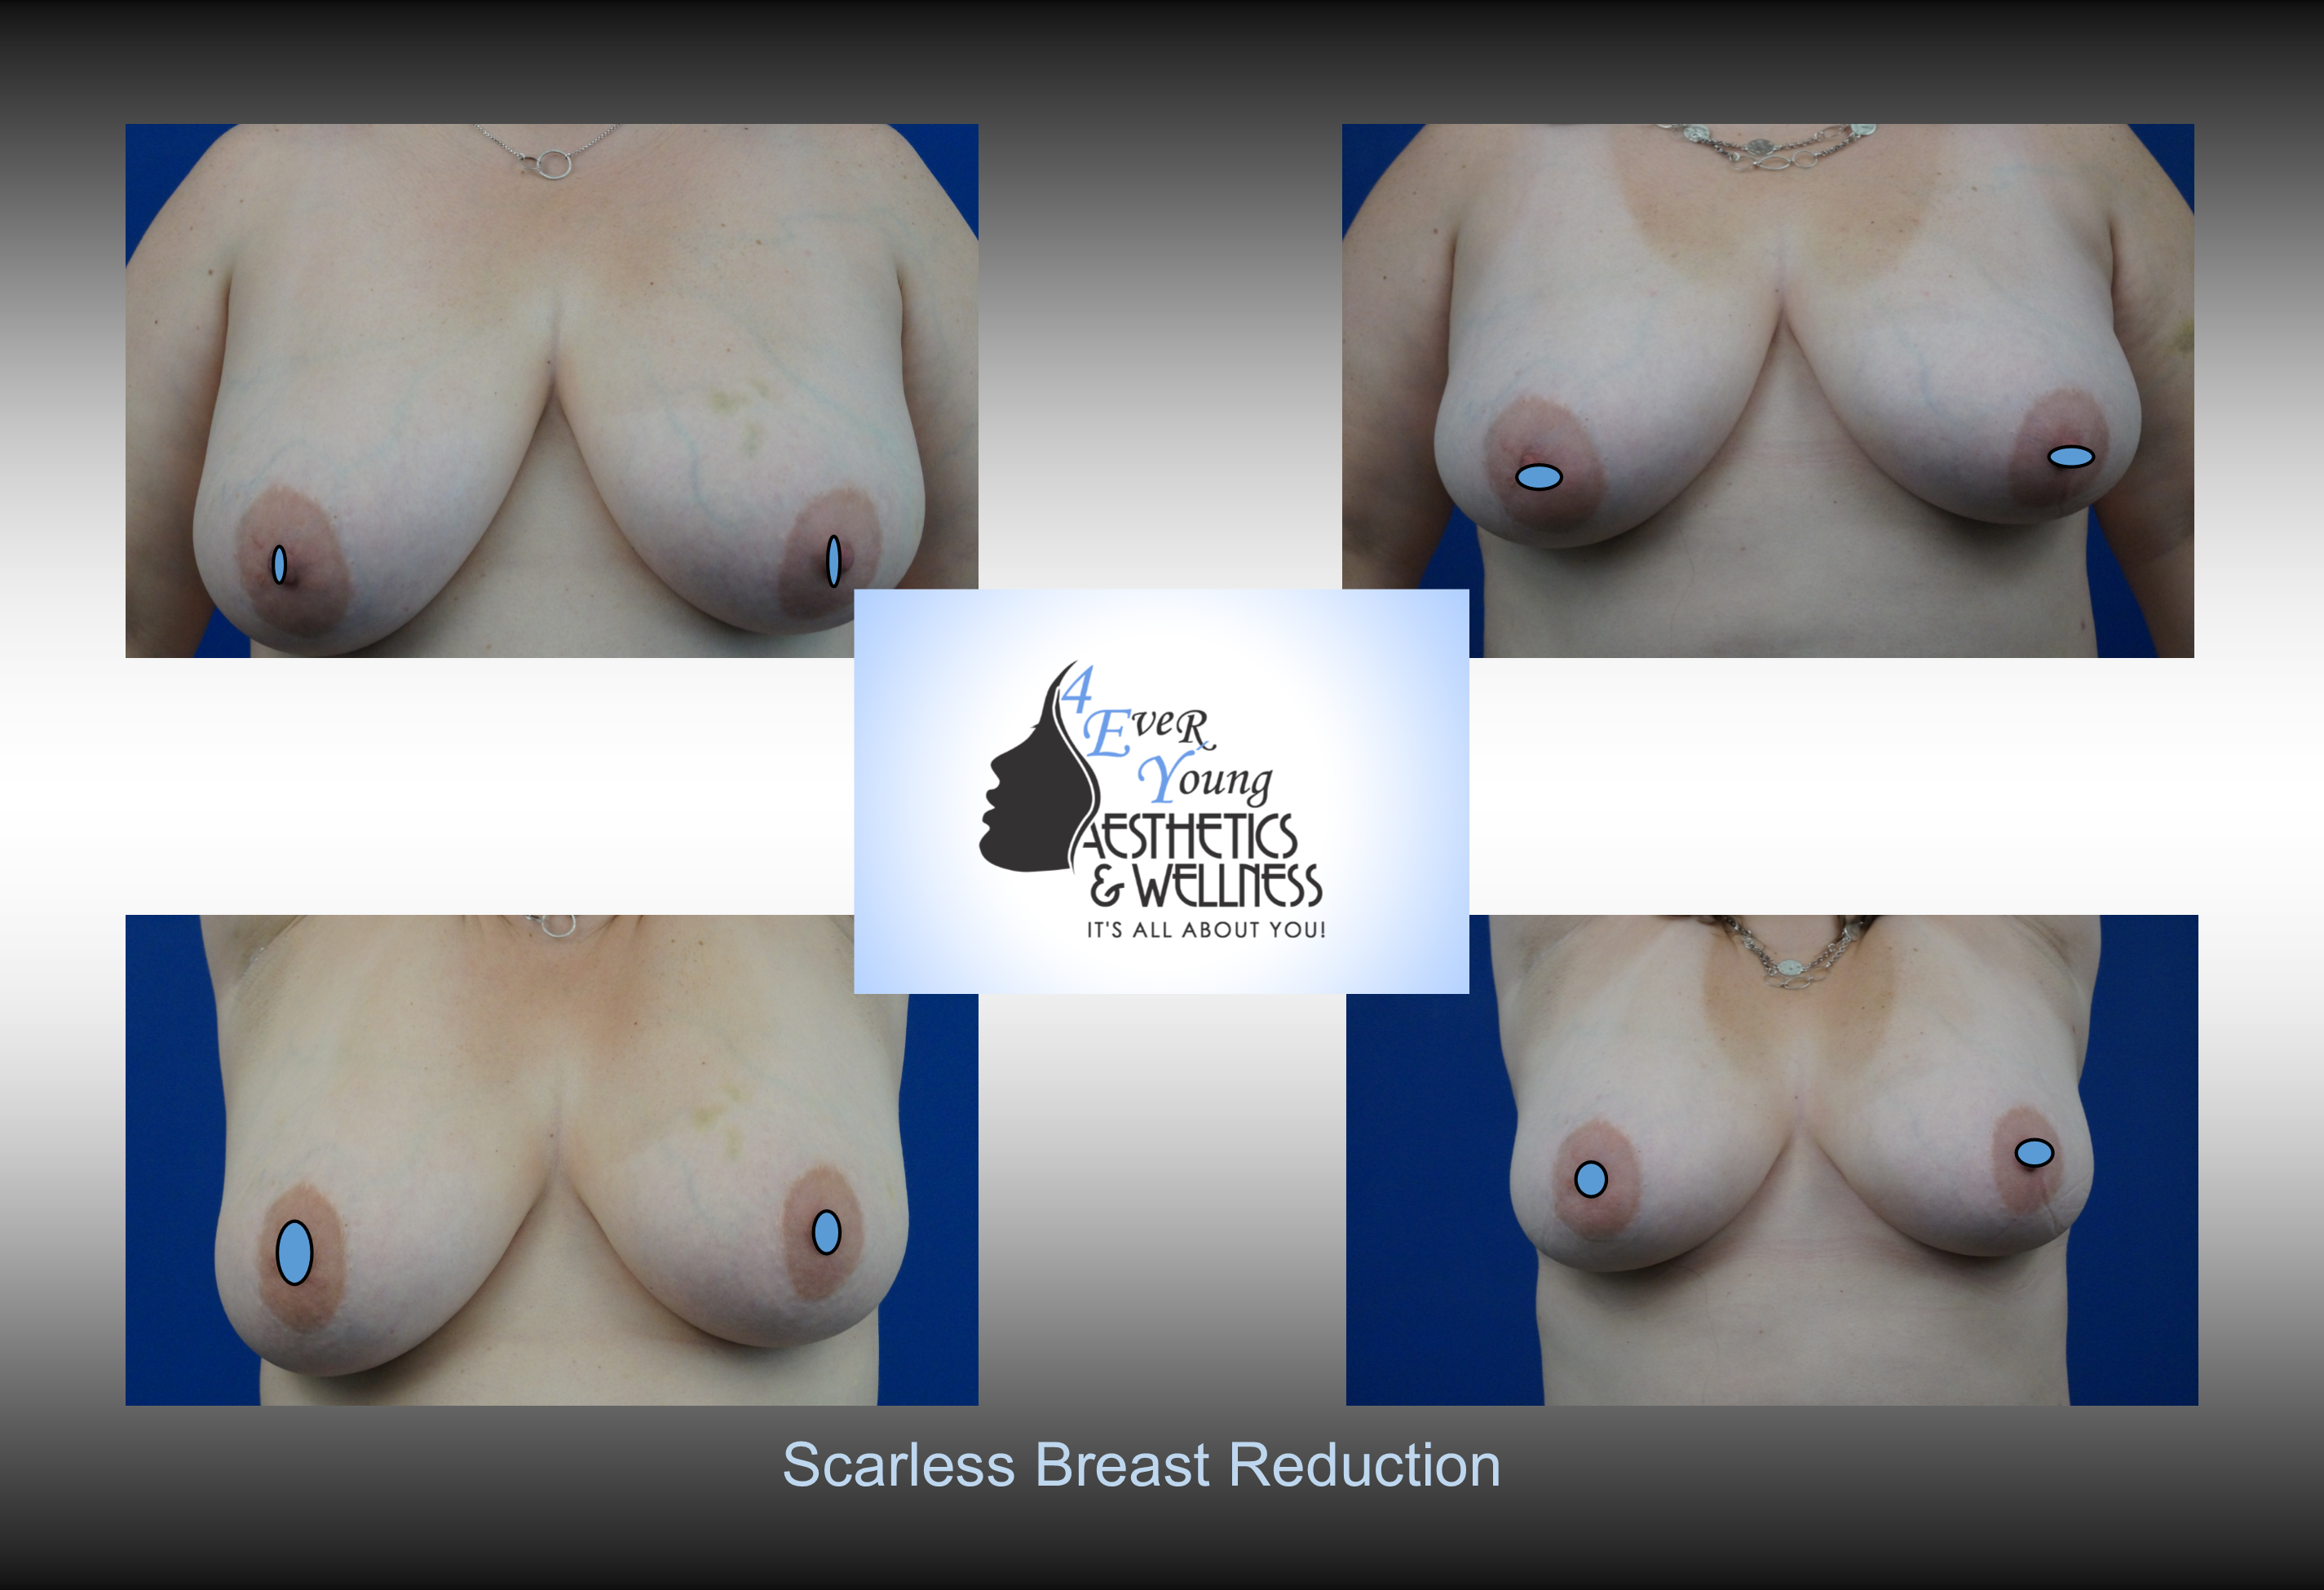 Scarless Breast Reduction, Liposuction is performed using tumescent anesthesia and traditional liposuction plastic surgery.  We are experts in laser liposuction (smartlipo), vaser liposuction and fat transfer, also known as fat grafting.  Our board-certified cosmetic surgeon is an expert at fat removal with liposuction which is an enhancement surgery and doesn't fall into the scope of practice of a board-certified plastic surgeon who is trained in reconstructive surgery.  Board-certified plastic surgeons with experience in liposuction are certainly qualified to perform the procedure but being trained strictly in plastic surgery is misleading.  We use abdominal liposuction, flank liposuction, back liposuction, arm liposuction, thigh liposuction and ankle liposuction to remove unsightly fat from problem areas with our tumescent liposuction procedures with or without sedation. If you desire we use autologous fat transfer (fat grafting) to use the fat obtained as the most natural dermal filler unlike synthetic fillers (Restylane, Juvederm, Sculptra, Radiesse, Belotero, Perlane) to improve fine lines and wrinkles of the face, hand rejuvenation with fat, fat transfer to breast, Brazilian Butt Lift (Butt Augmentation), liposculpture, lip augmentation with fat.  Fat transfer to the breast can be a great alternative to breast augmentation, saline implants, silicone implants, breast augmentation with mastopexy or just to improve volume in the upper pole of the breast.